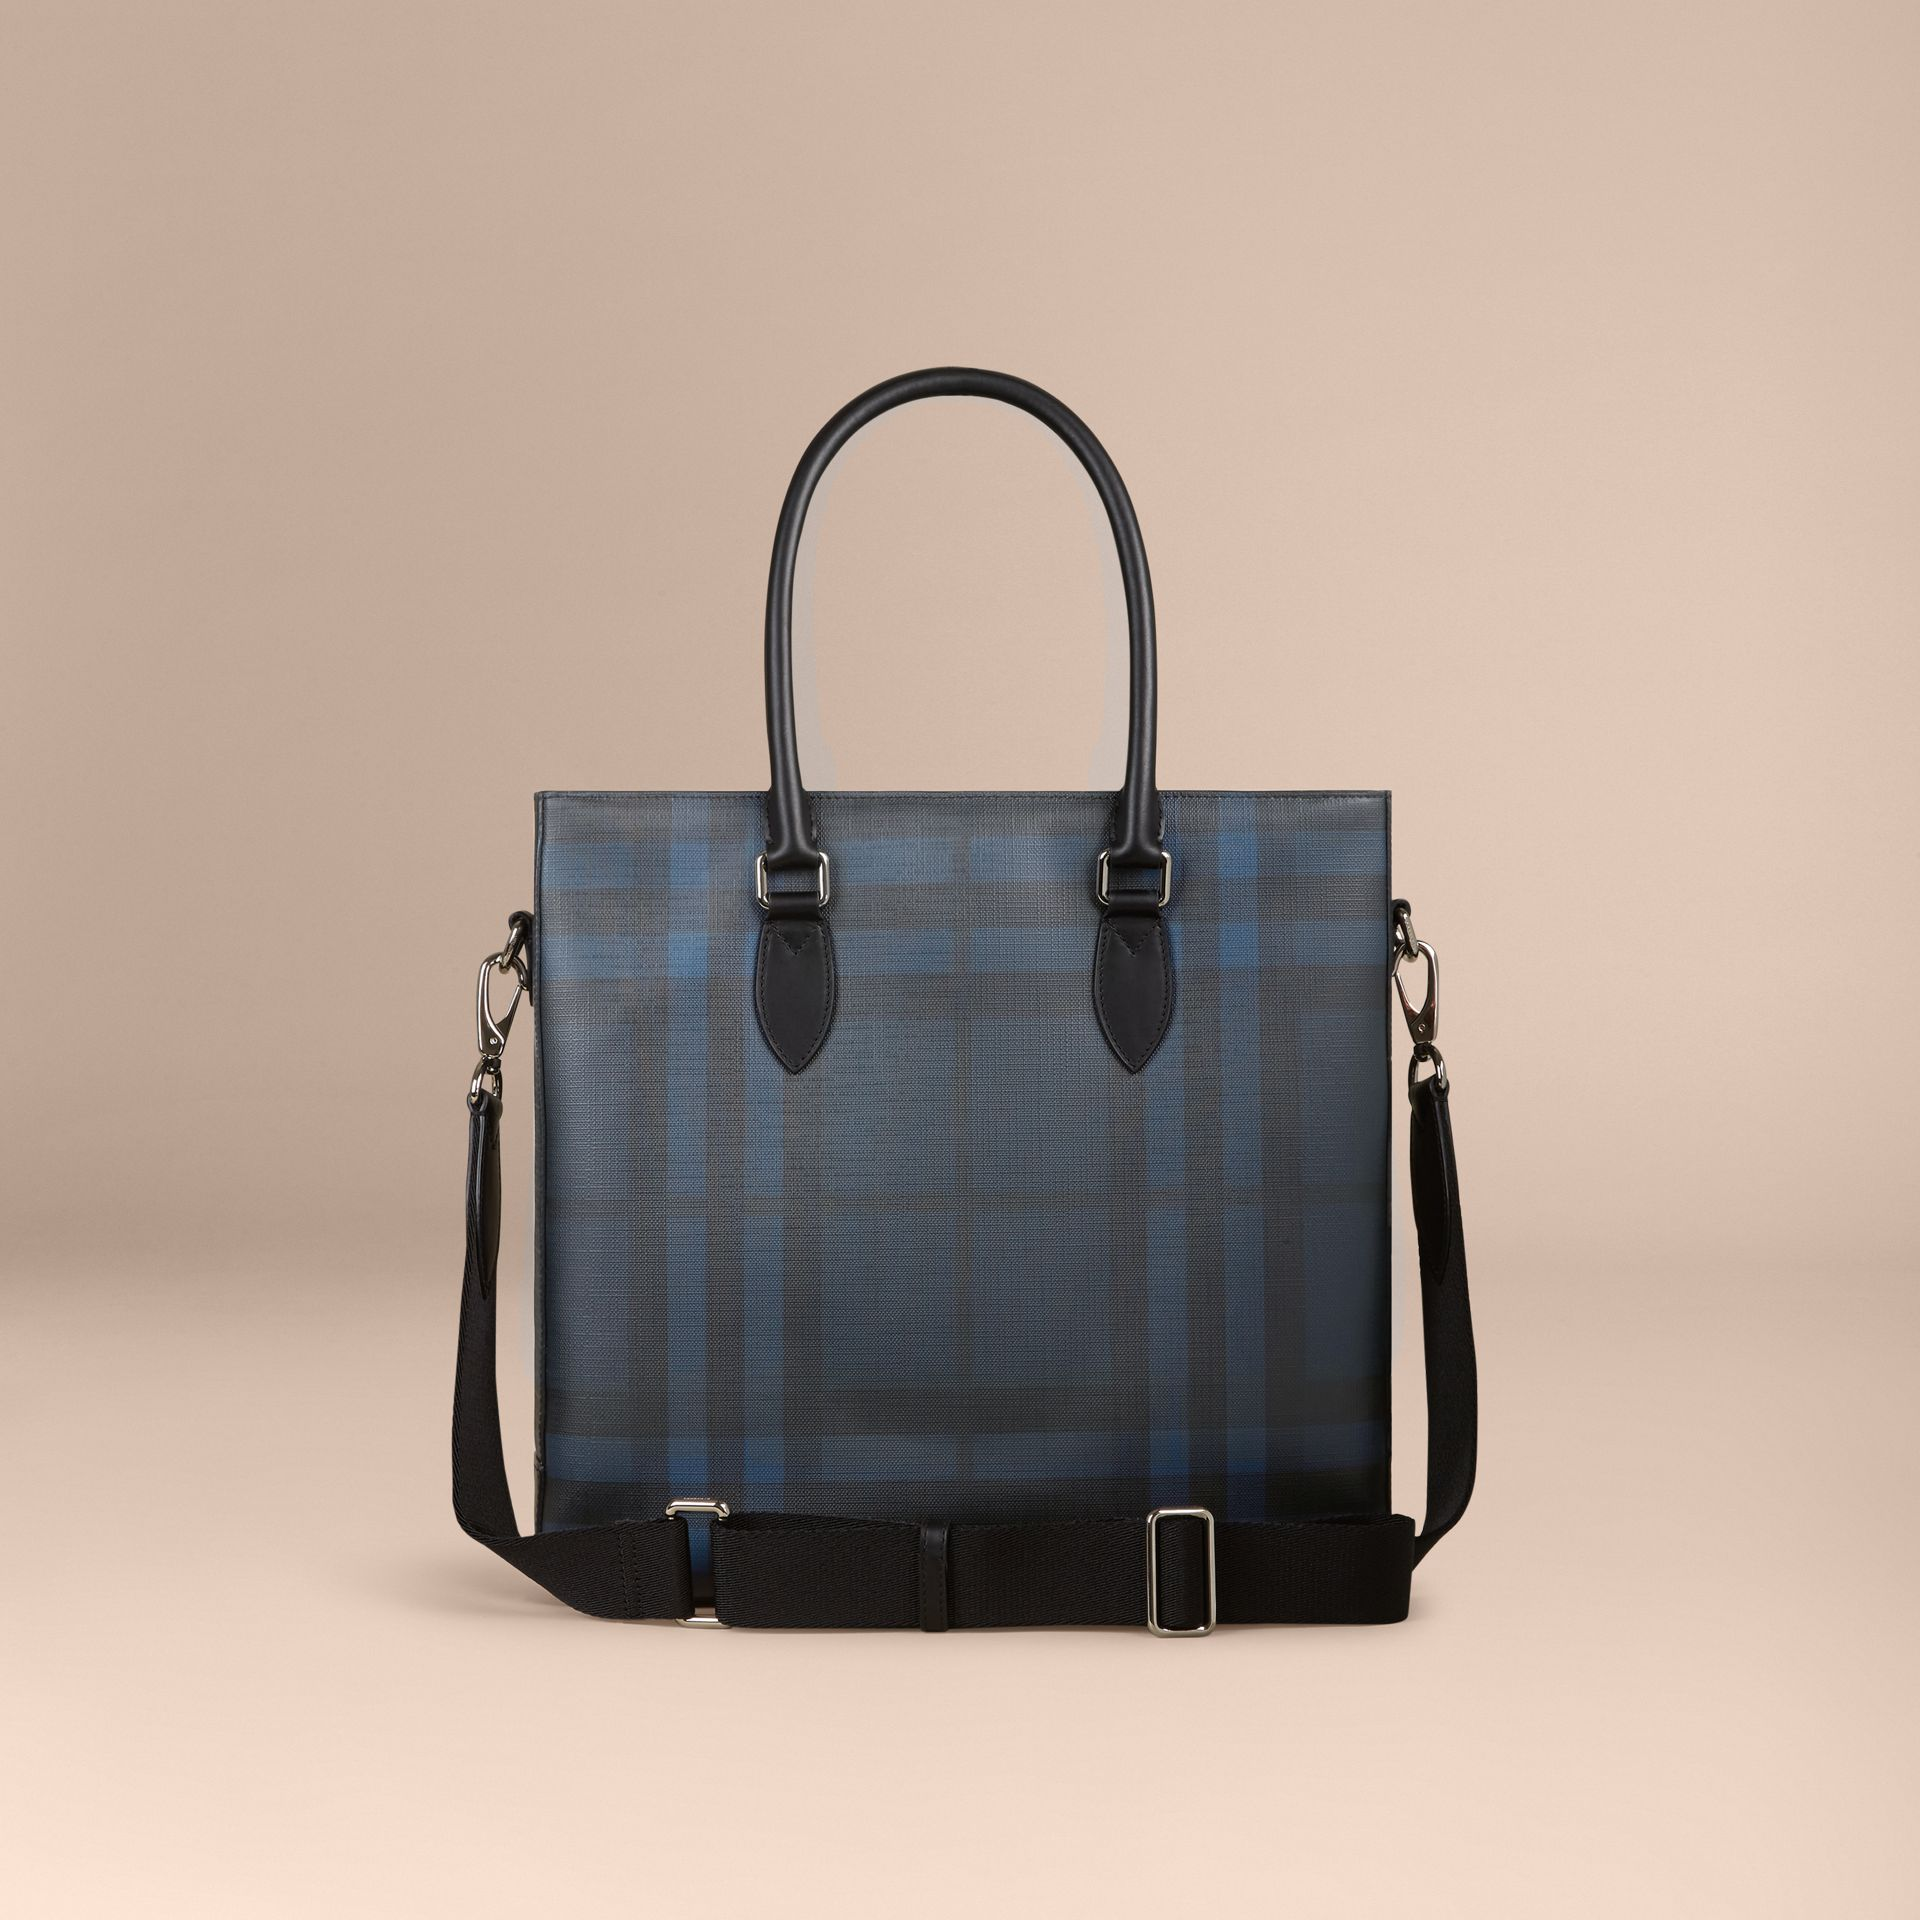 London Check Tote Bag in Navy/black - gallery image 4